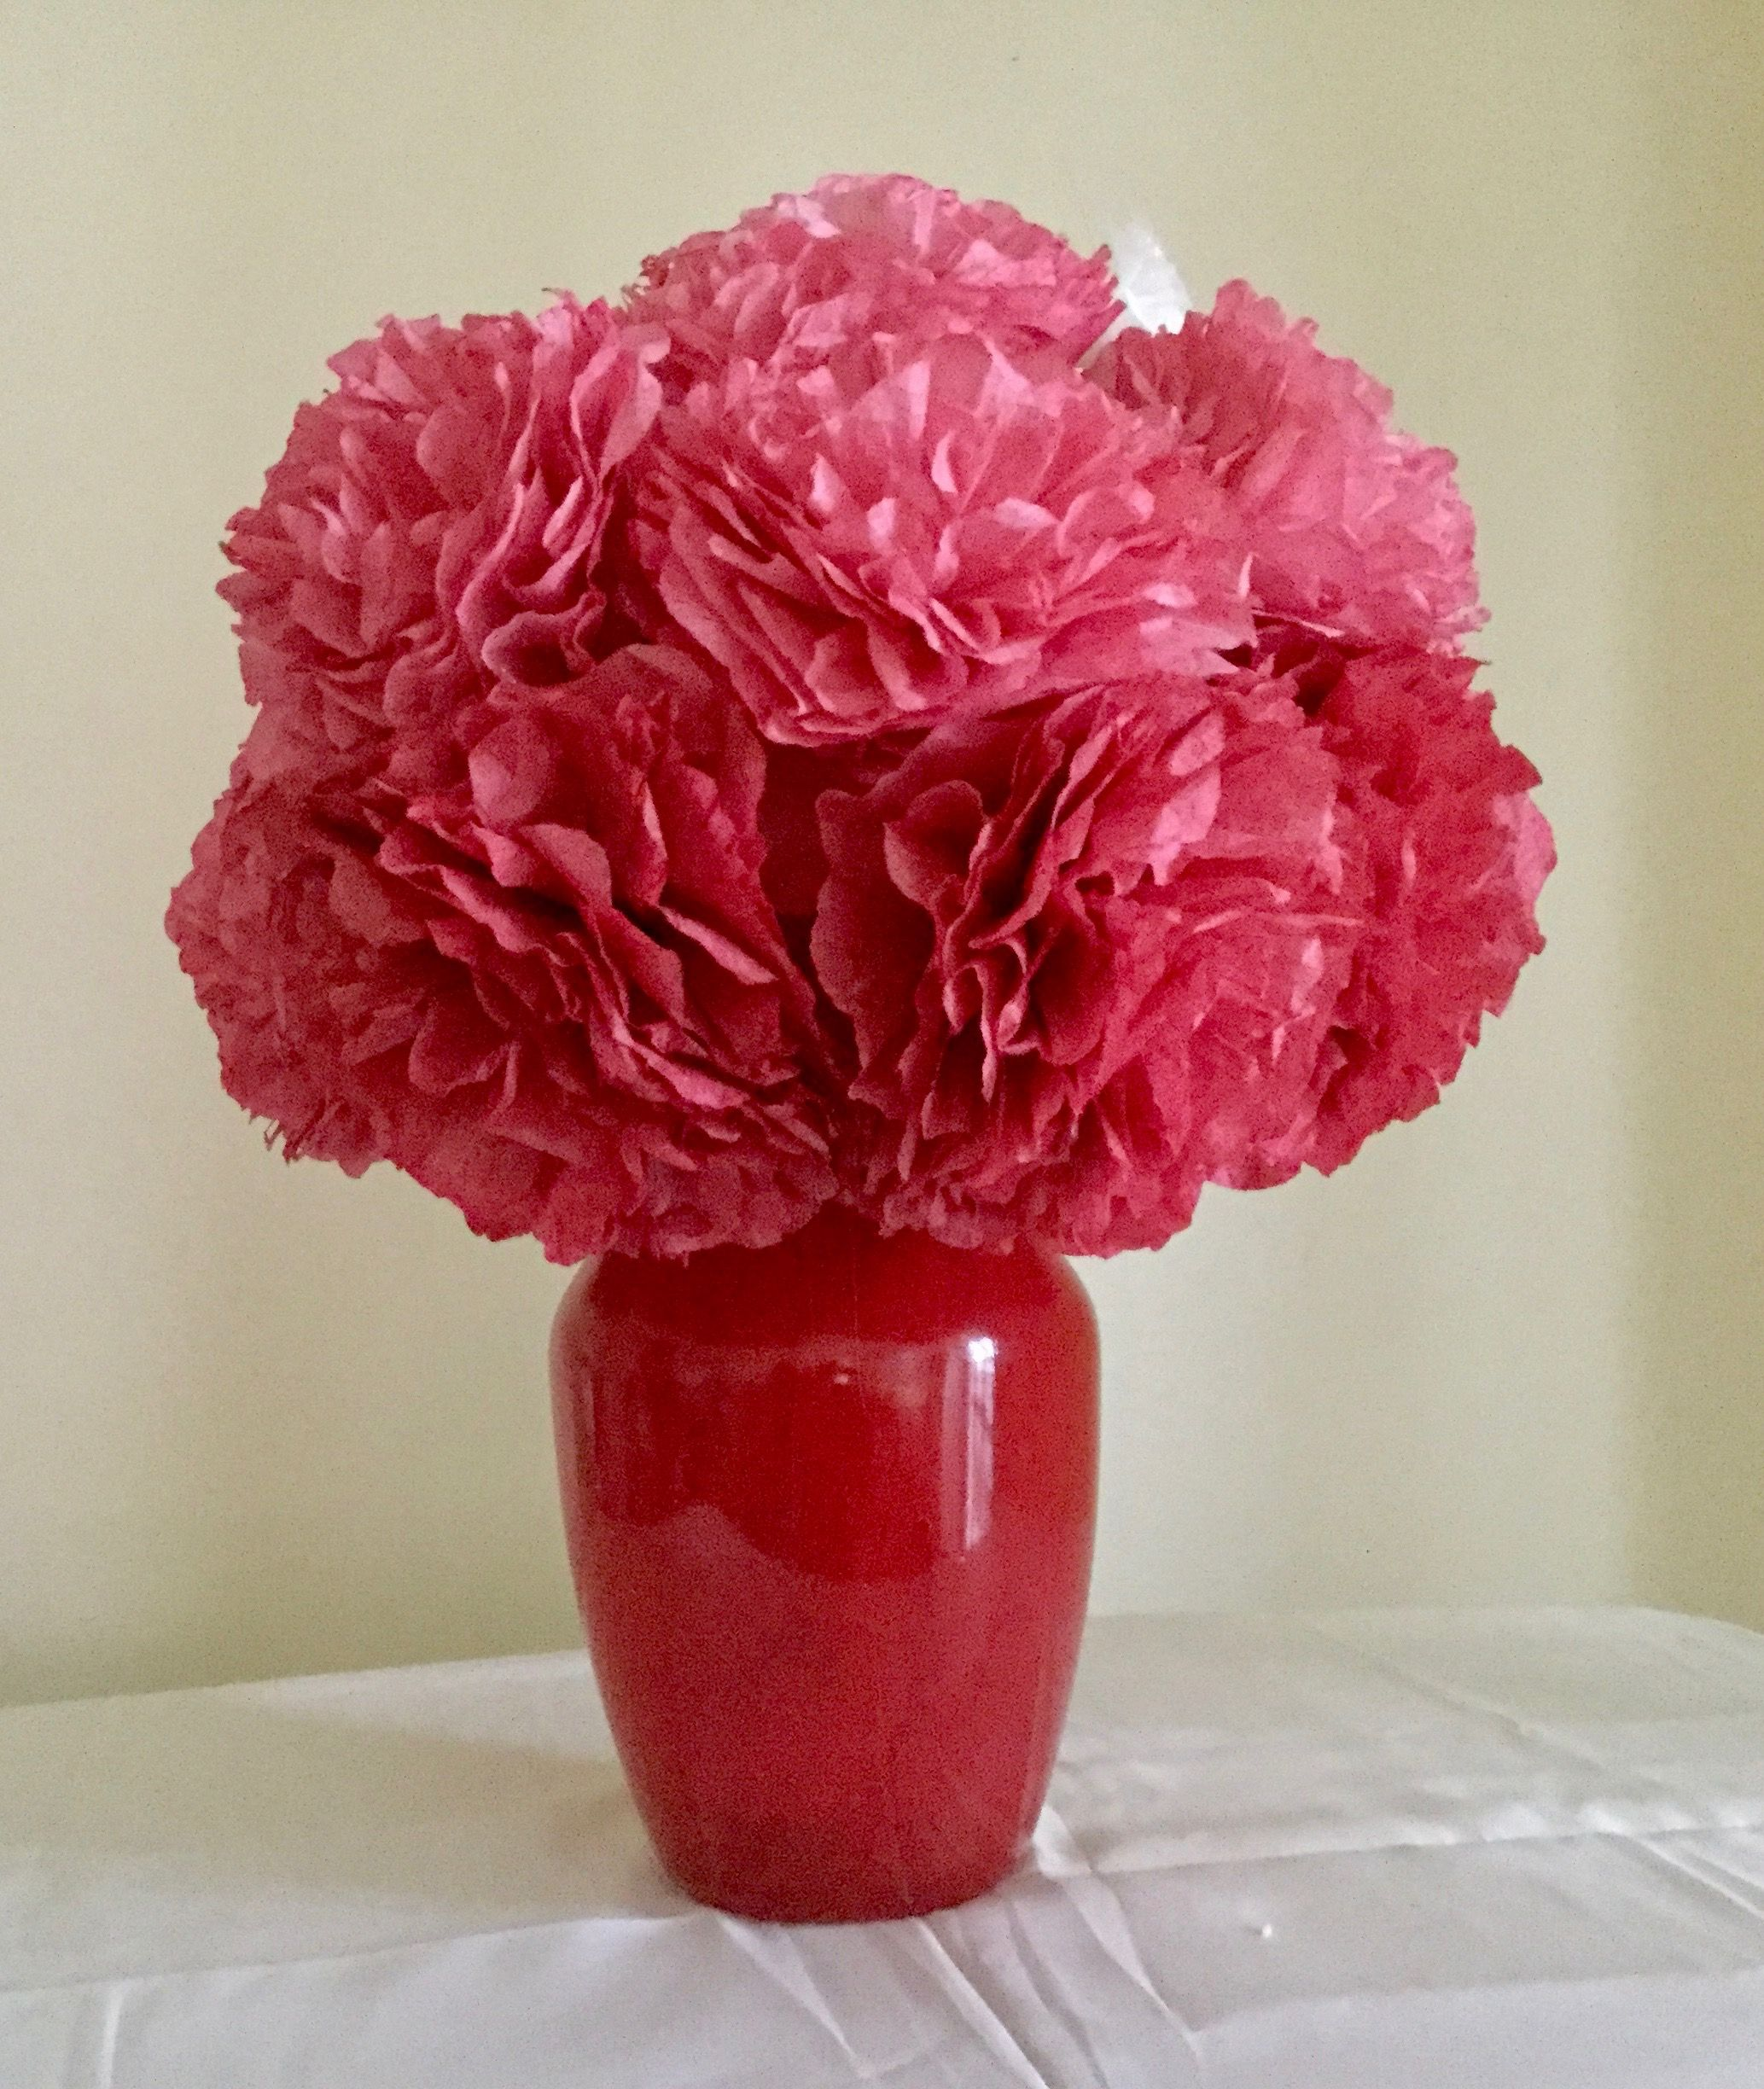 Ombre Red Carnations With A Monochrome Vase Red Carnation Flower Arrangements Carnations